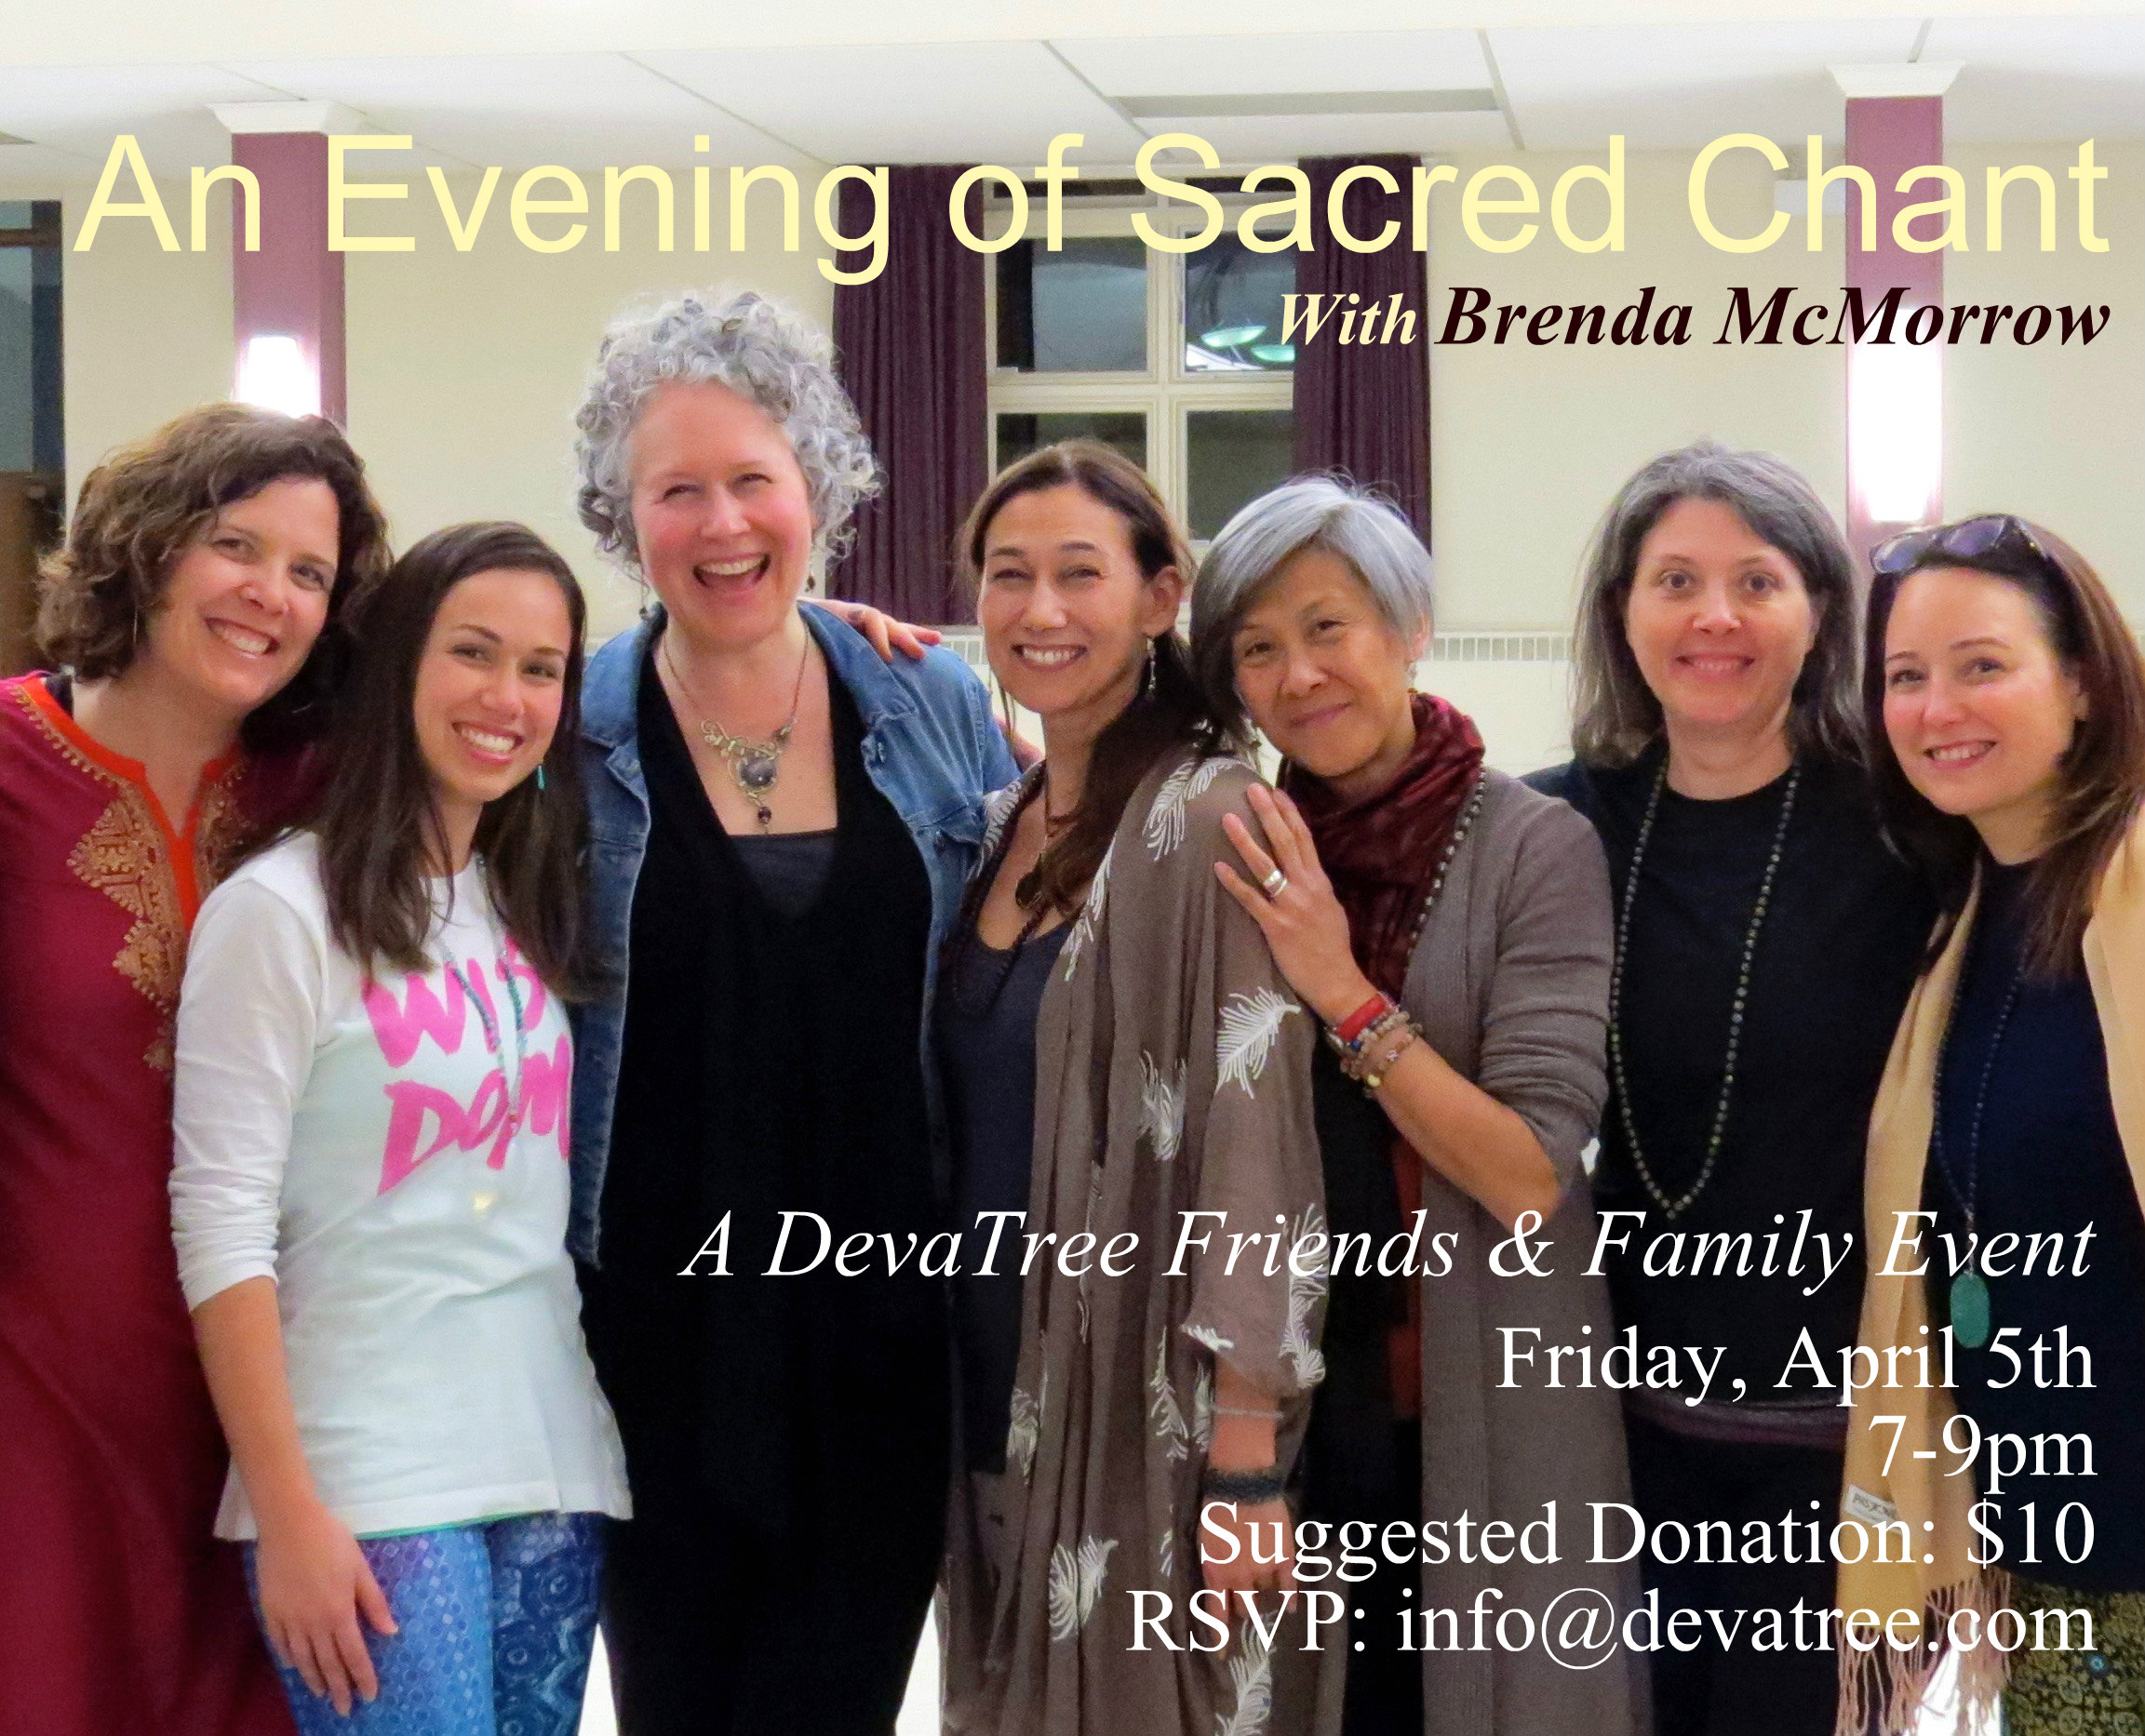 An Evening of Sacred Chant with Brenda McMorrow in London, Ontario Friday, April 5th, 2019